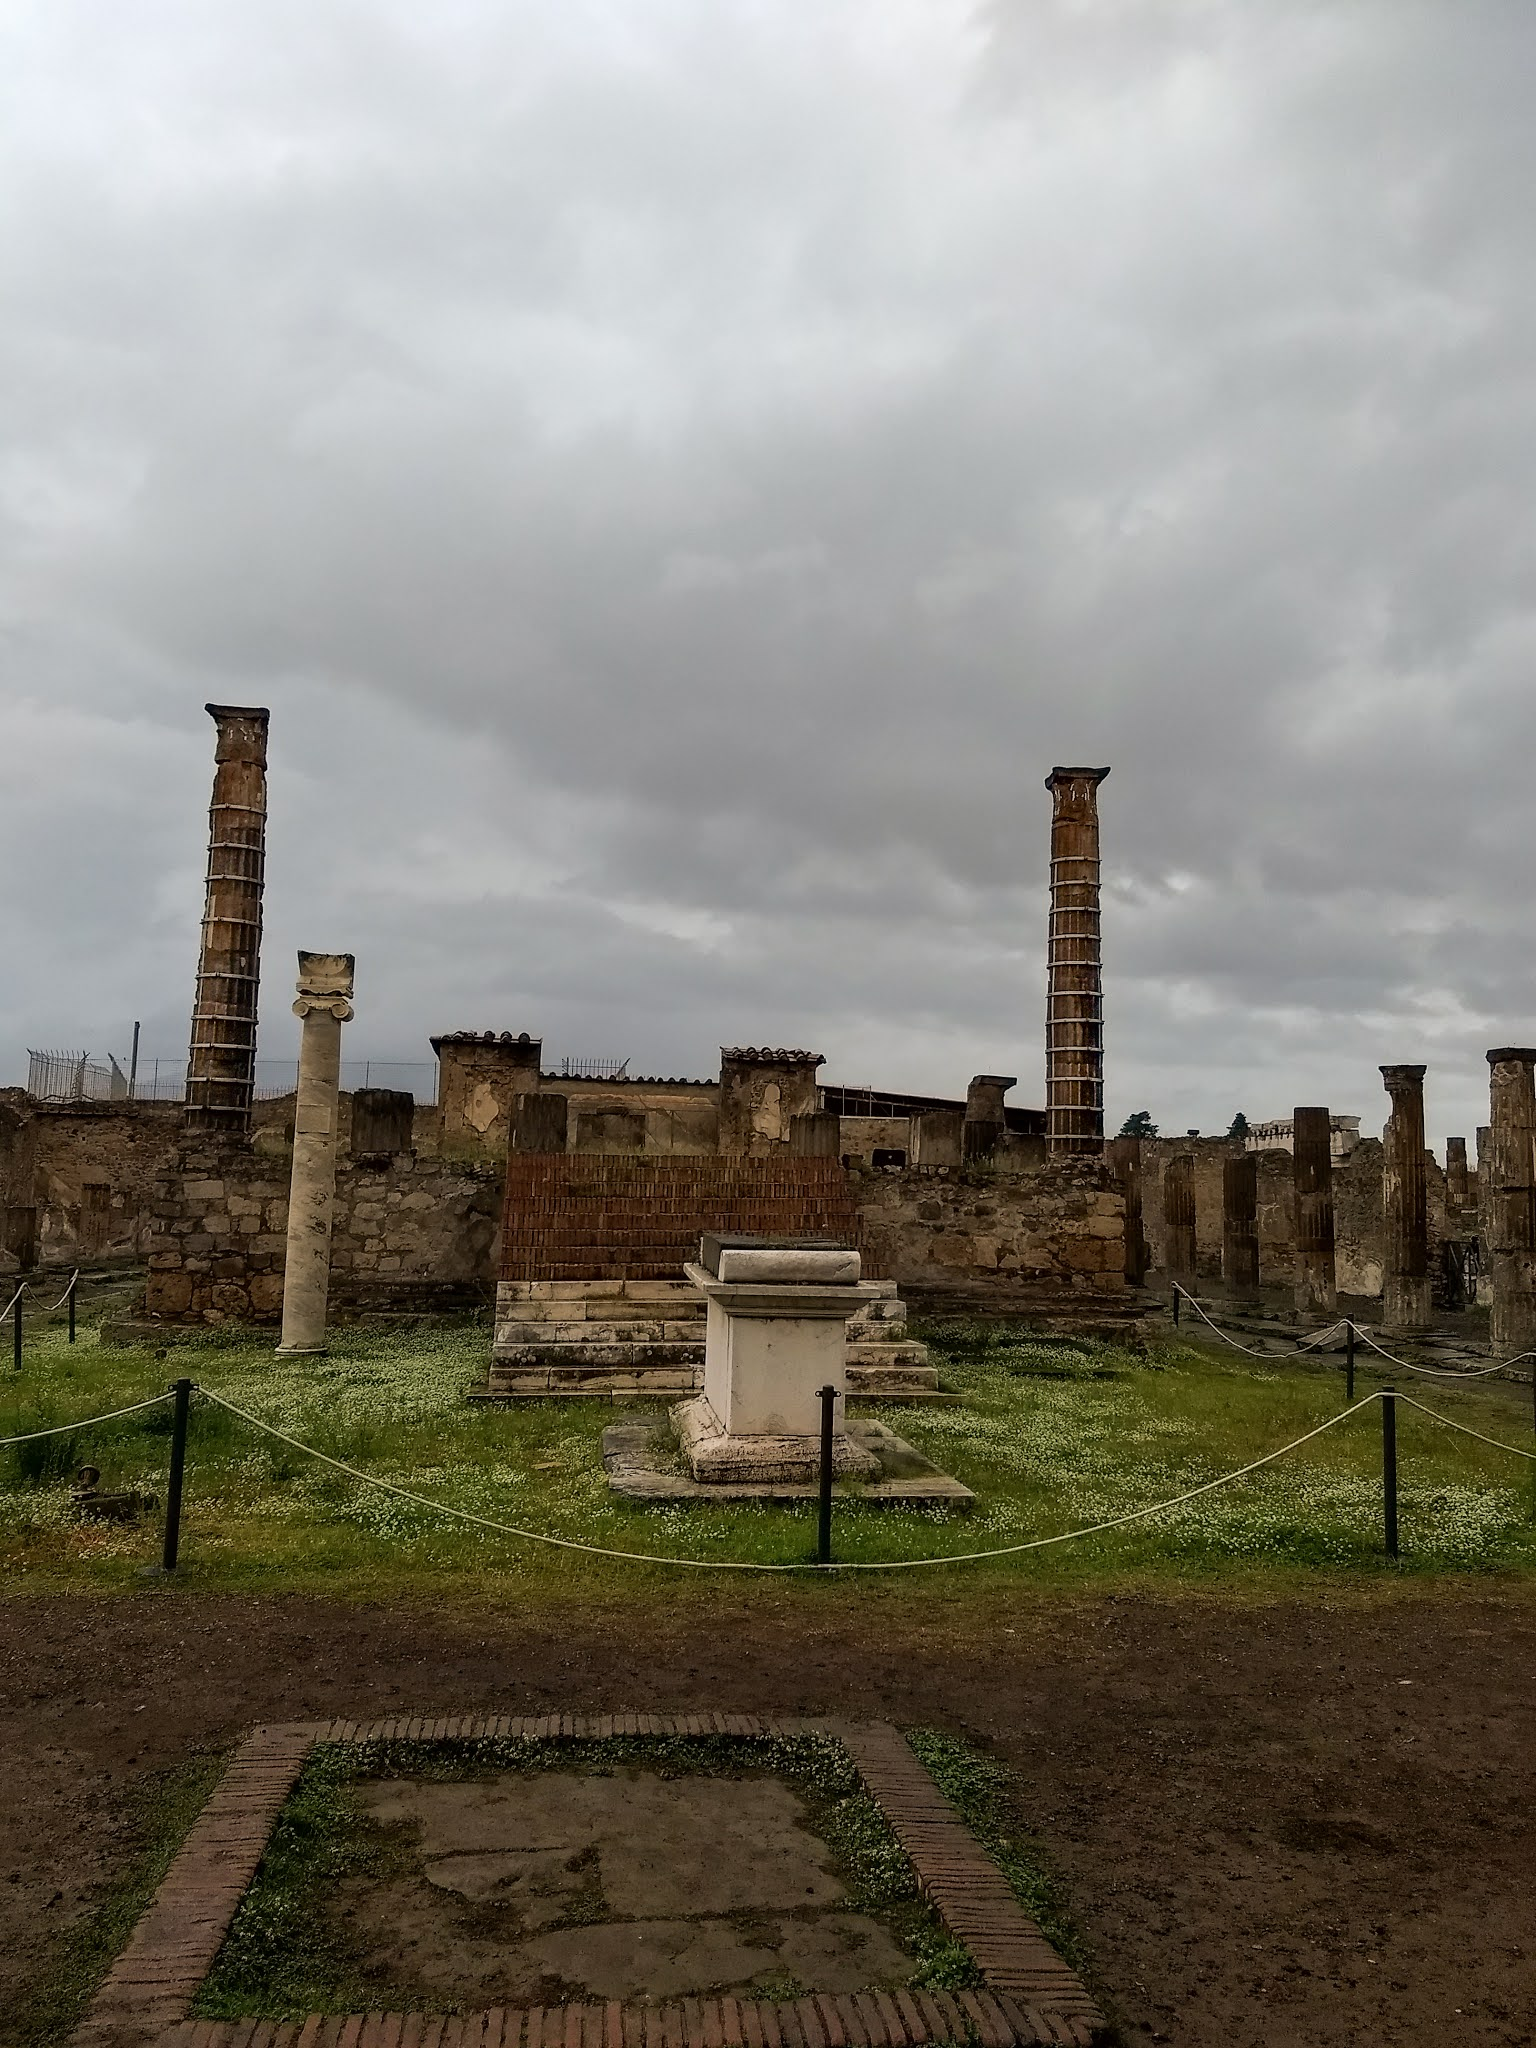 View of the temple of Apollo in ancient Pompeii.